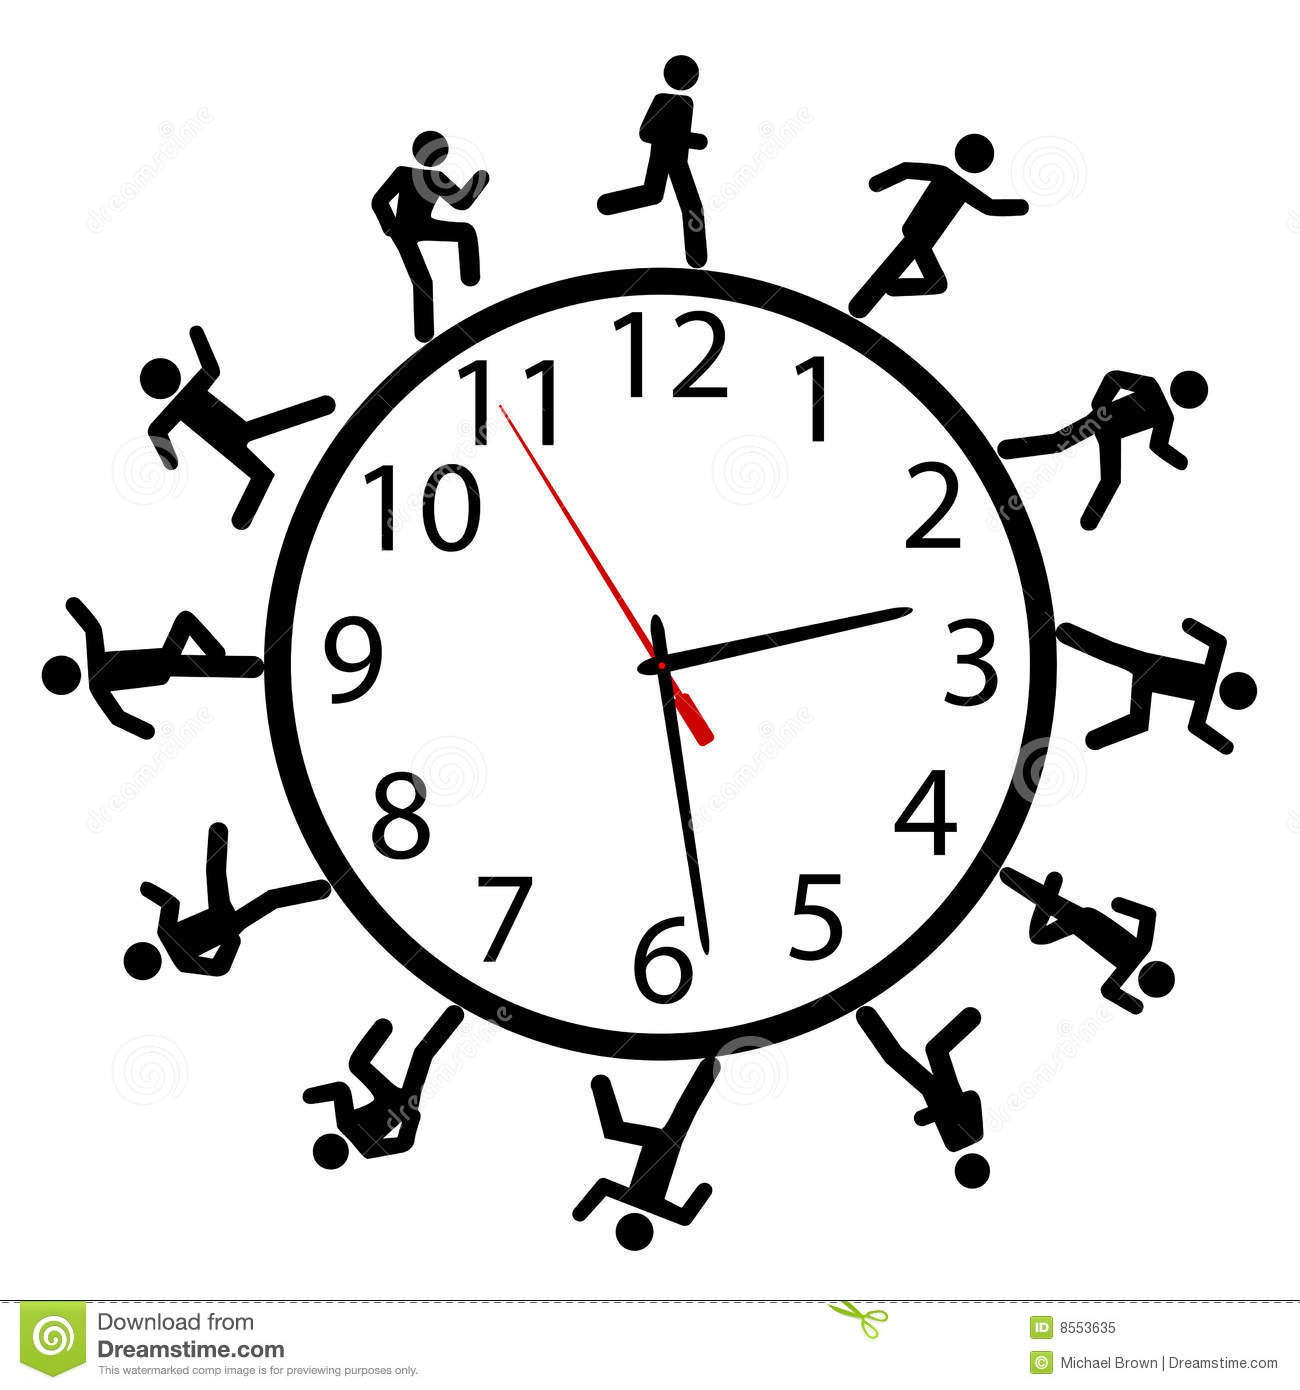 Symbol People Run A Race Around The Time Clock Royalty